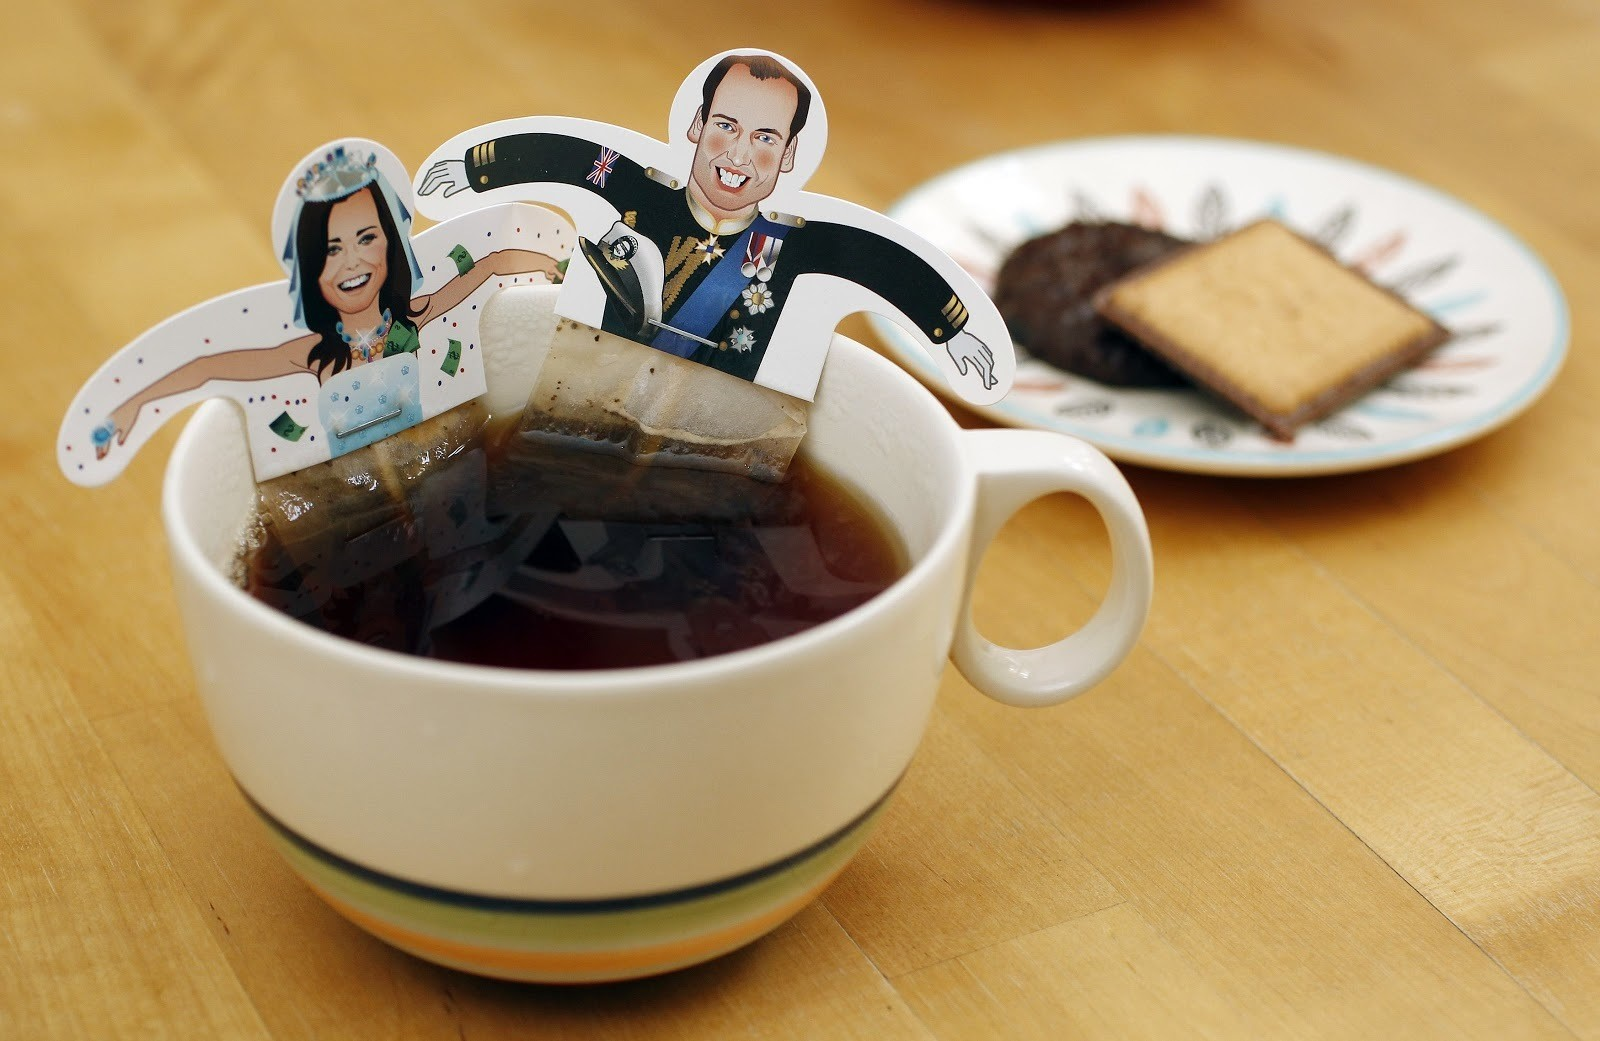 Souvenir teabags with depictions of Britain's Prince William and Kate Middleton are seen in London April 7, 2011. A British minister said on Wednesday that two billion people were expected to tune in to TV broadcasts to watch this month's royal wedding between Prince William and Kate Middleton on April 29.   REUTERS/Suzanne Plunkett (BRITAIN - Tags: ROYALS ENTERTAINMENT SOCIETY) - LM1E74718CS01